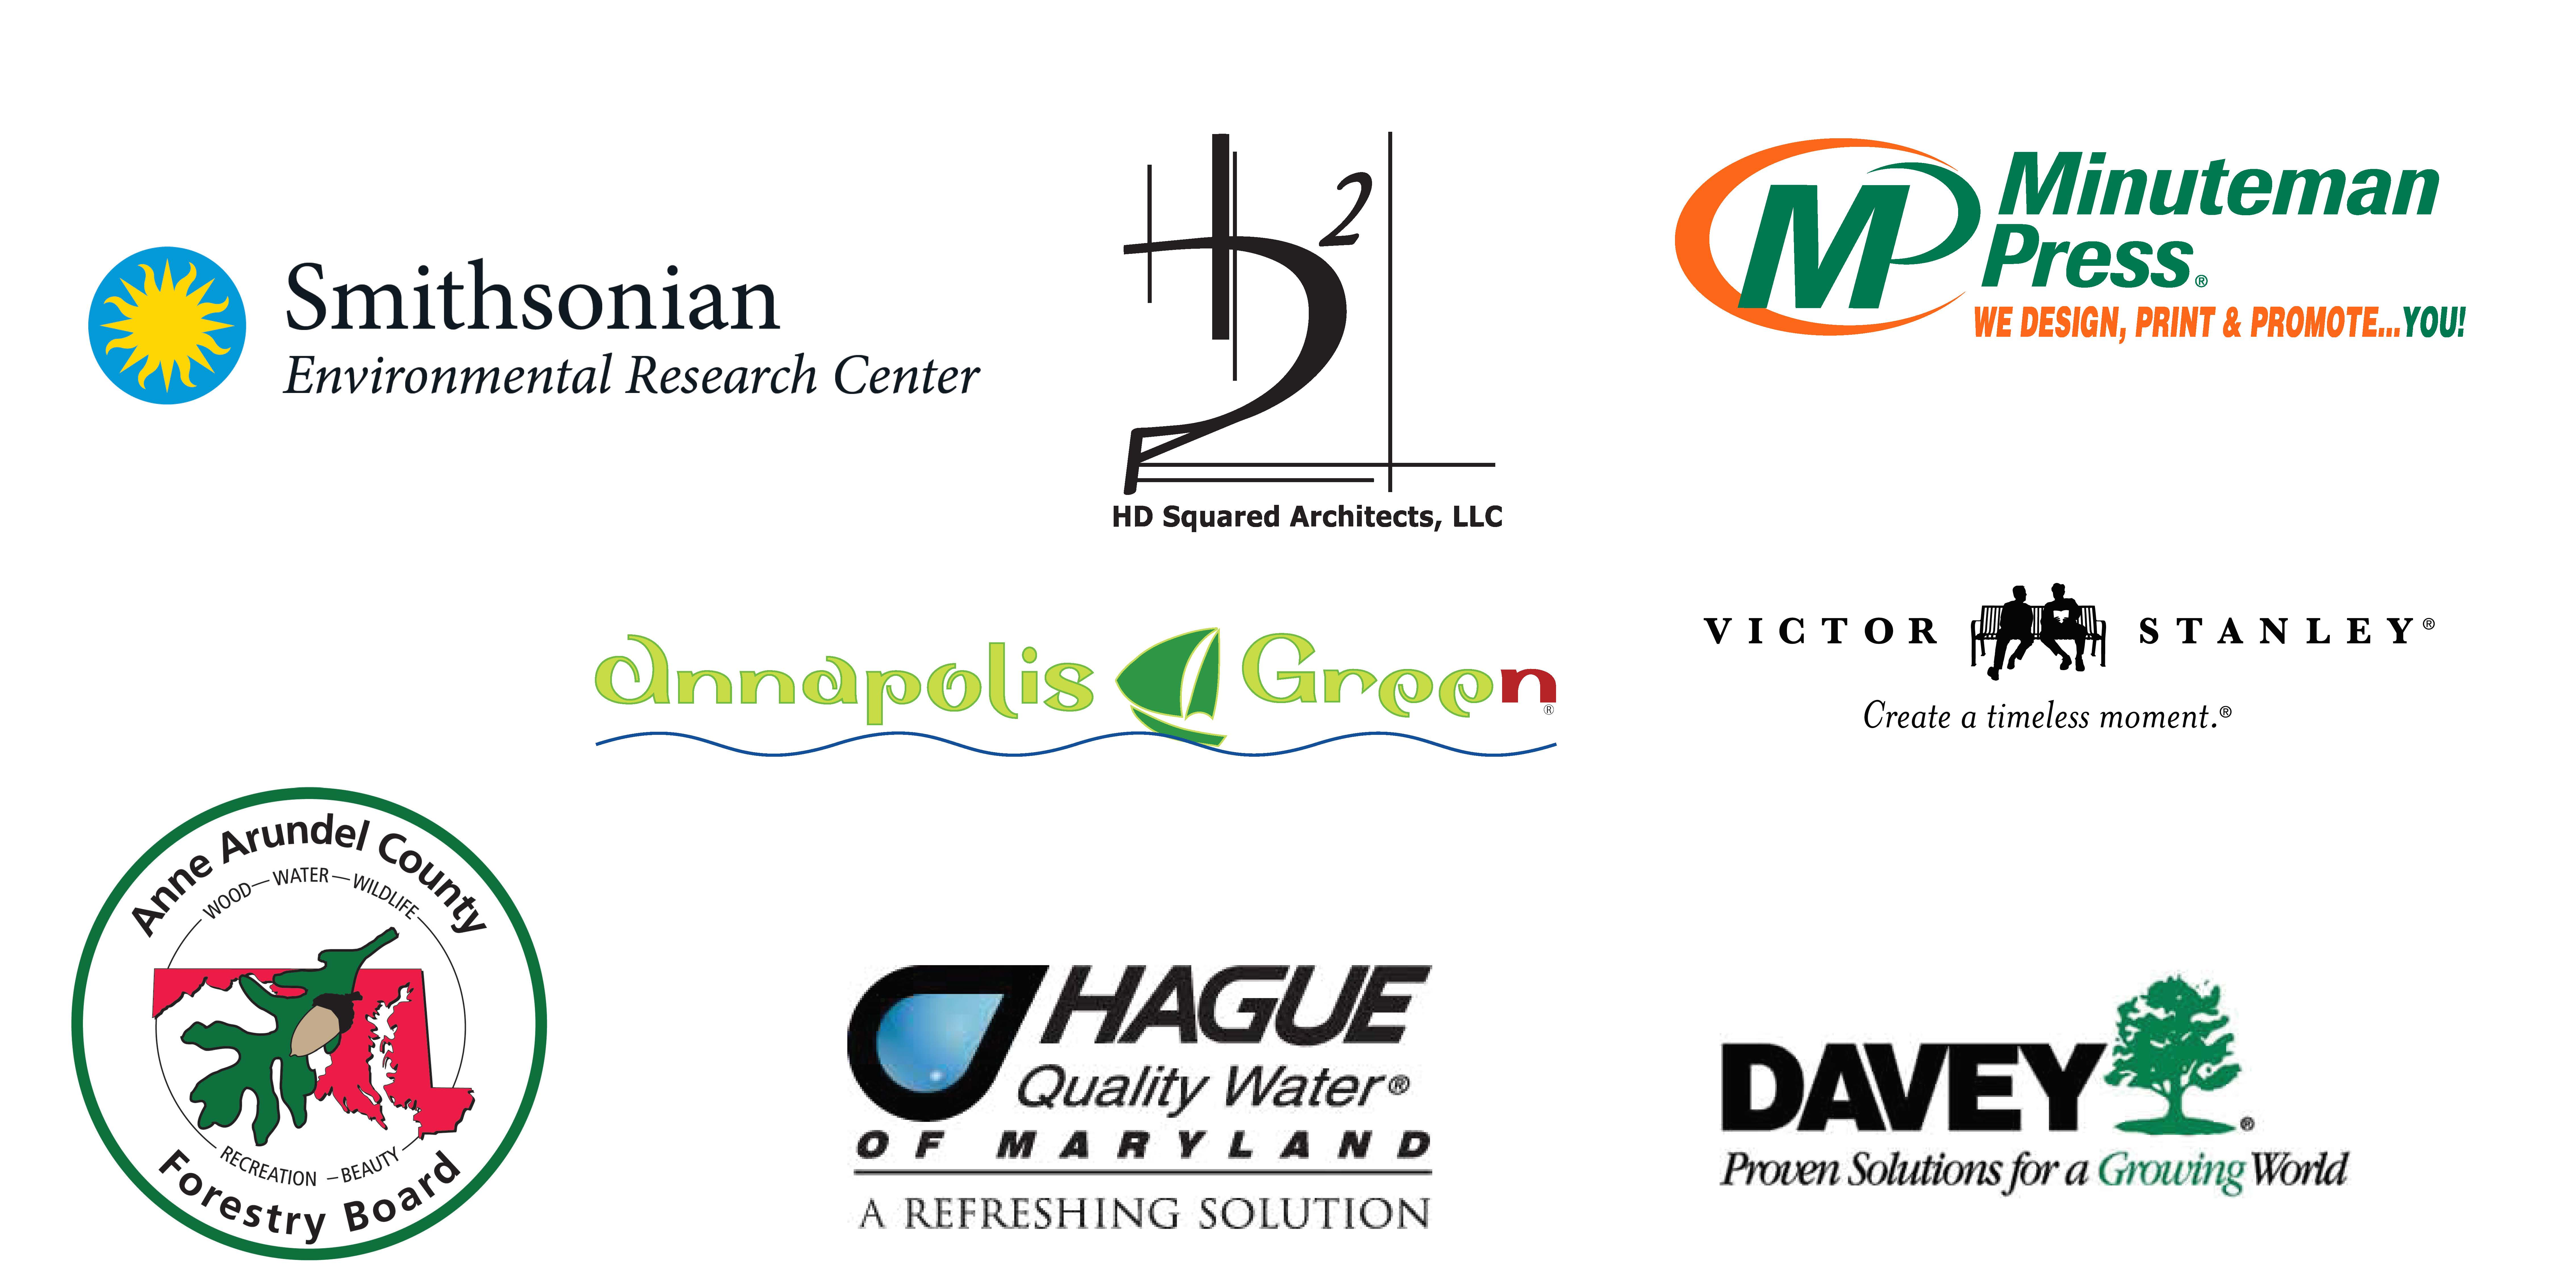 Homestead Gardens Green Expo Sponsors including Smithsonian Environmental Research Center, Minuteman Press, Annapolis Green, Victor Stanley, AA County Forestry Board, Hague of Maryland, and Davey.